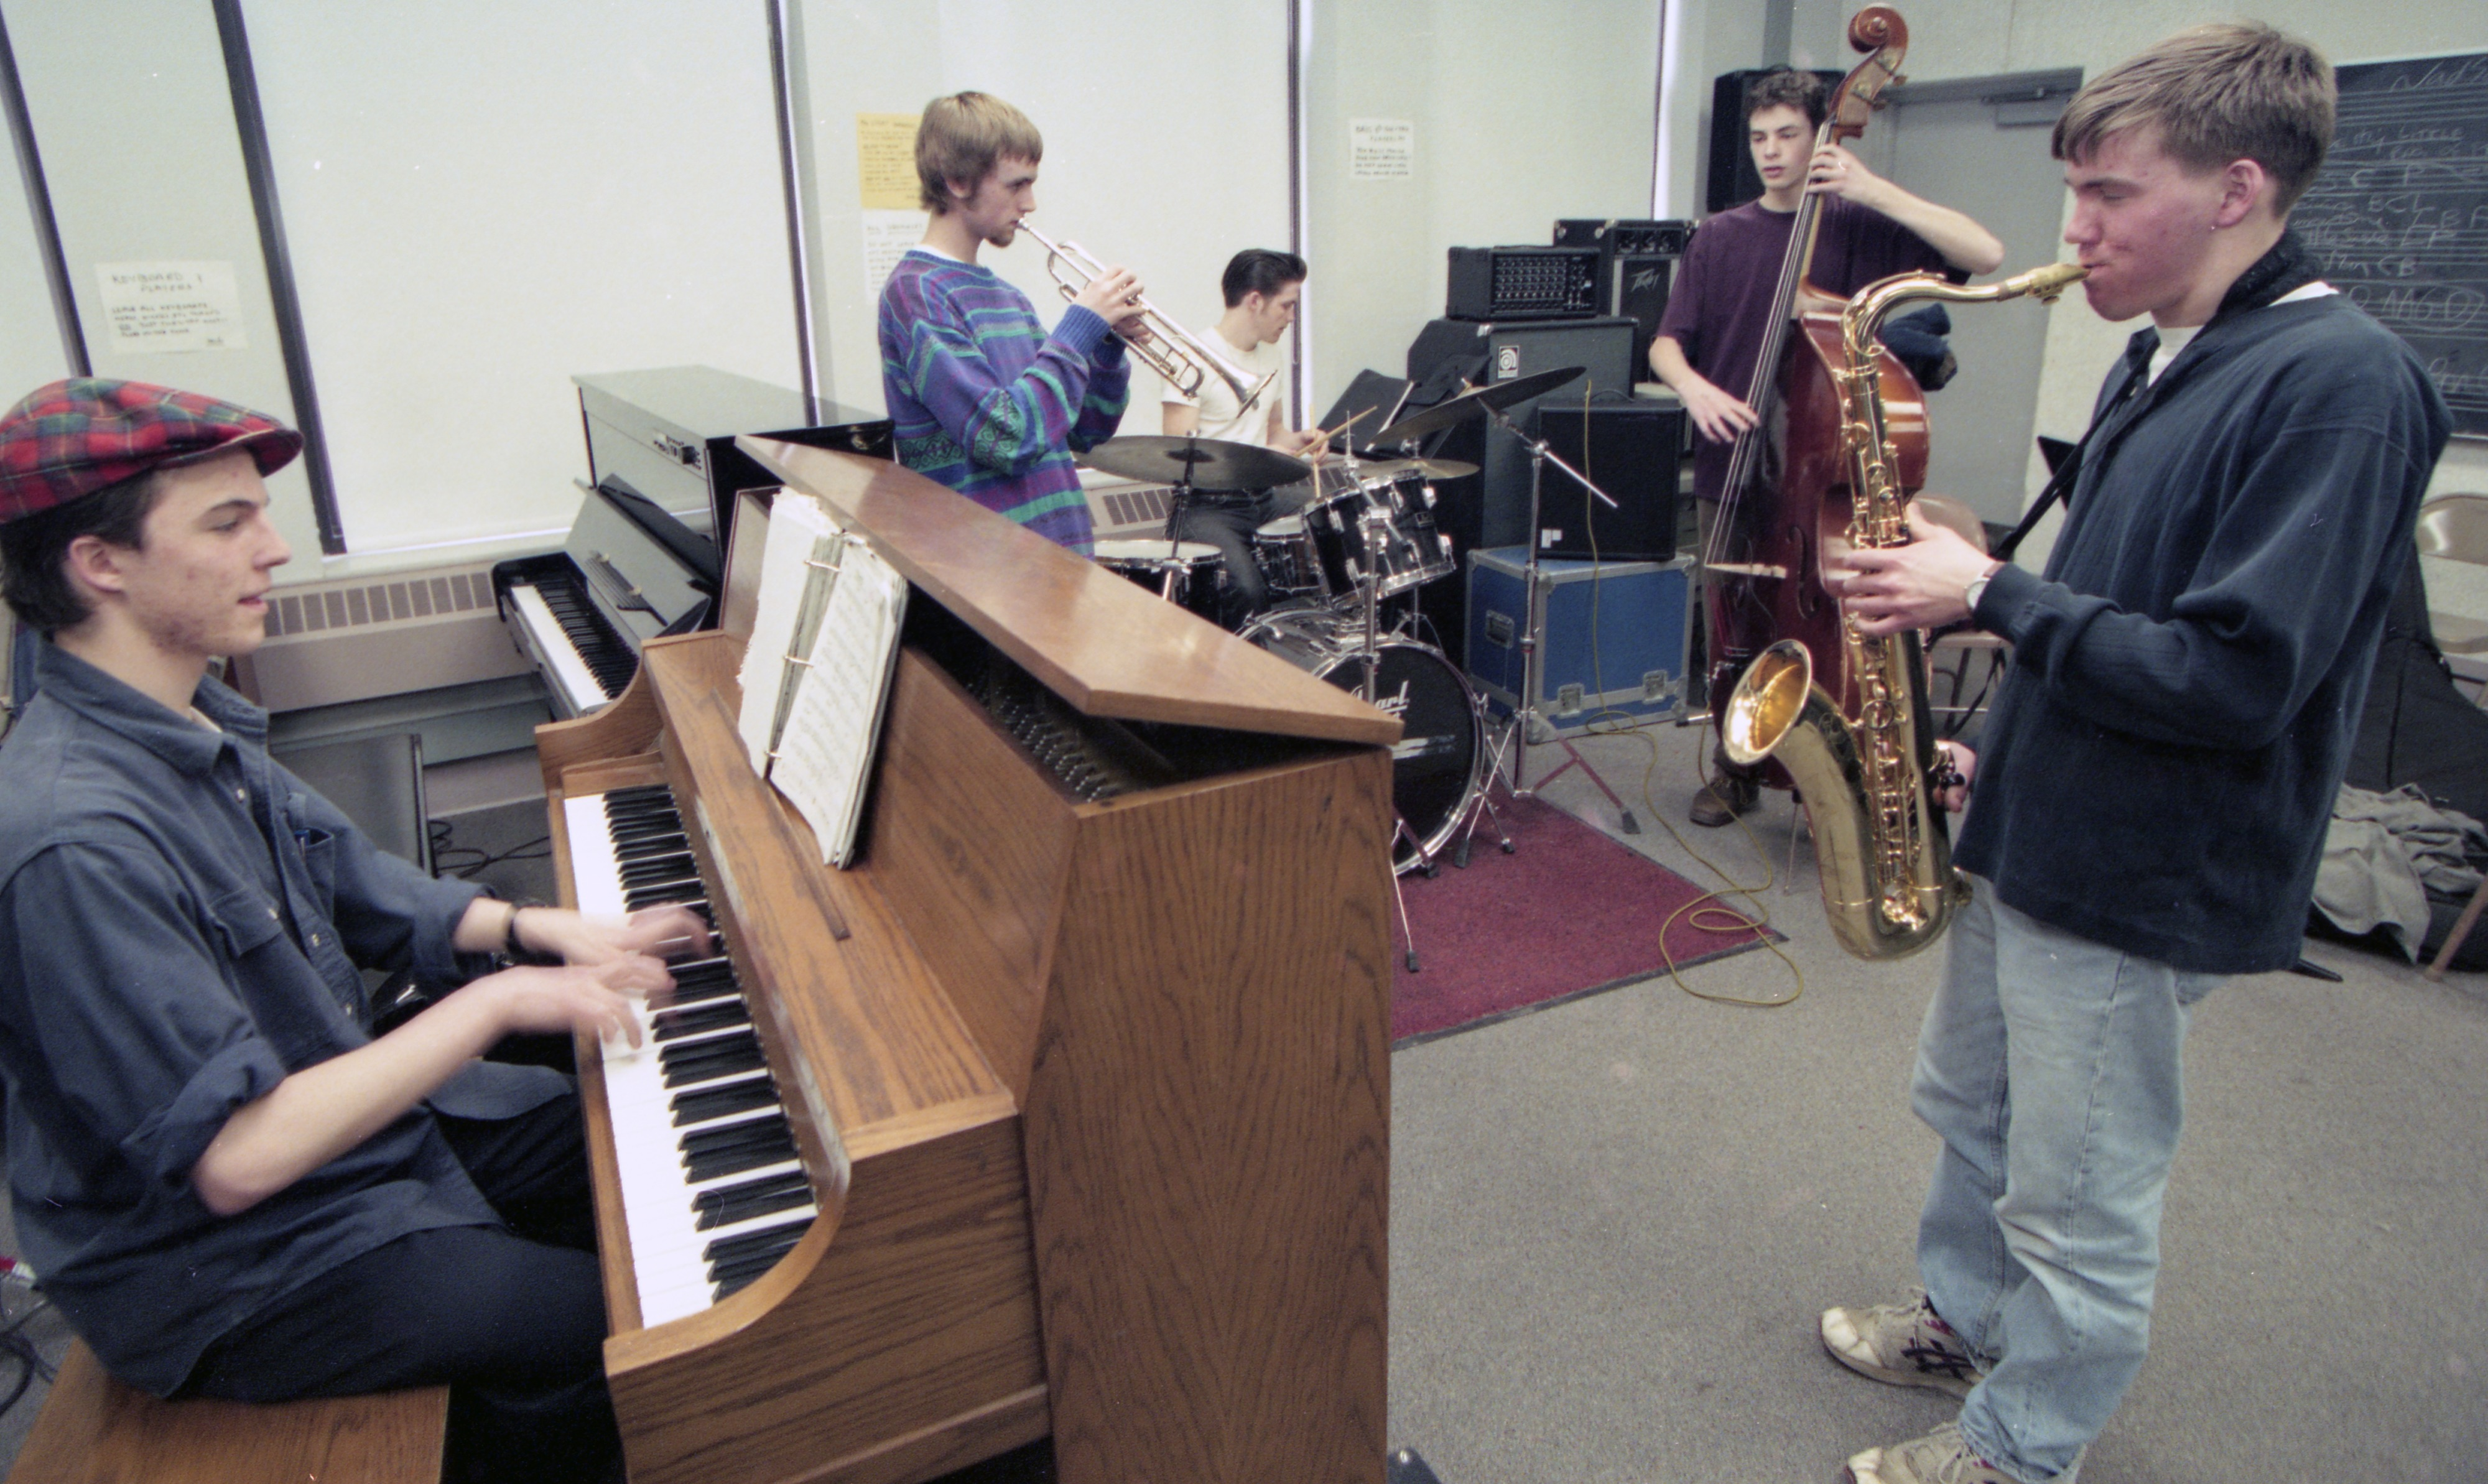 Community High School's 2:00 Jazz Ensemble Rehearses For An Upcoming Performance, February 1996 image